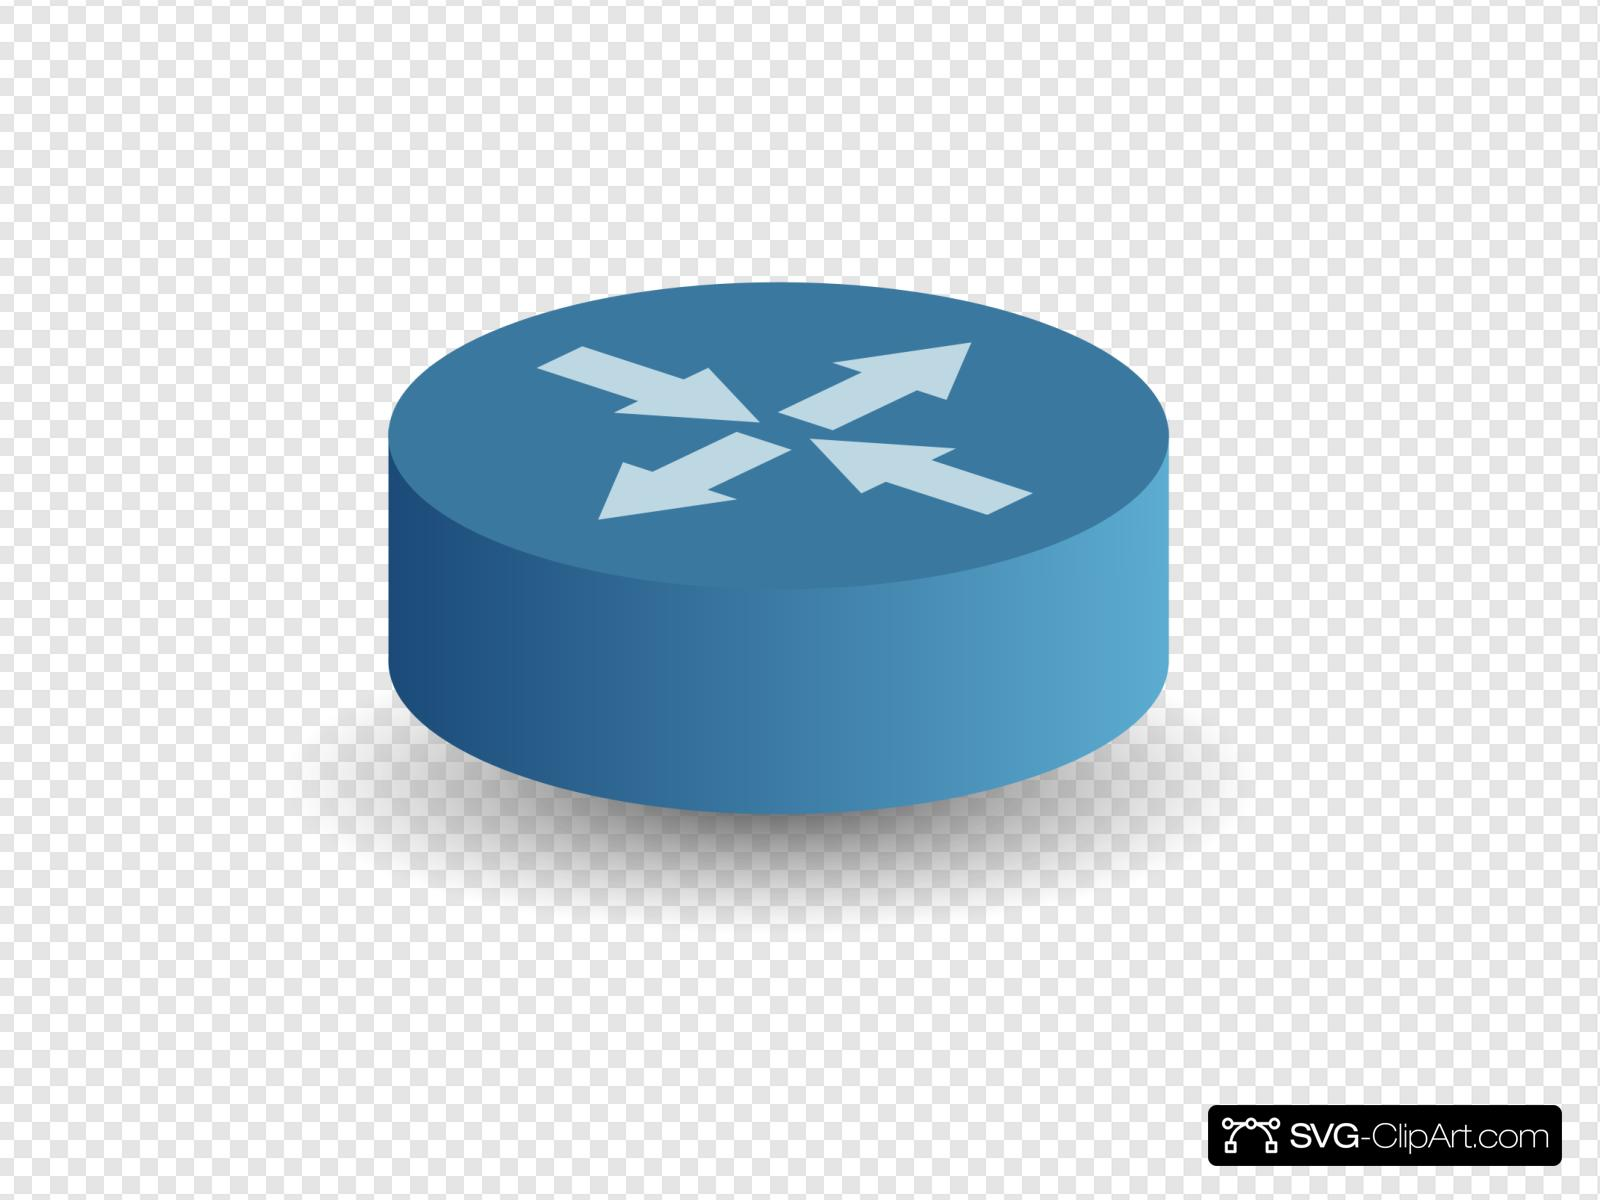 Router icon clipart graphic free library Router Clip art, Icon and SVG - SVG Clipart graphic free library